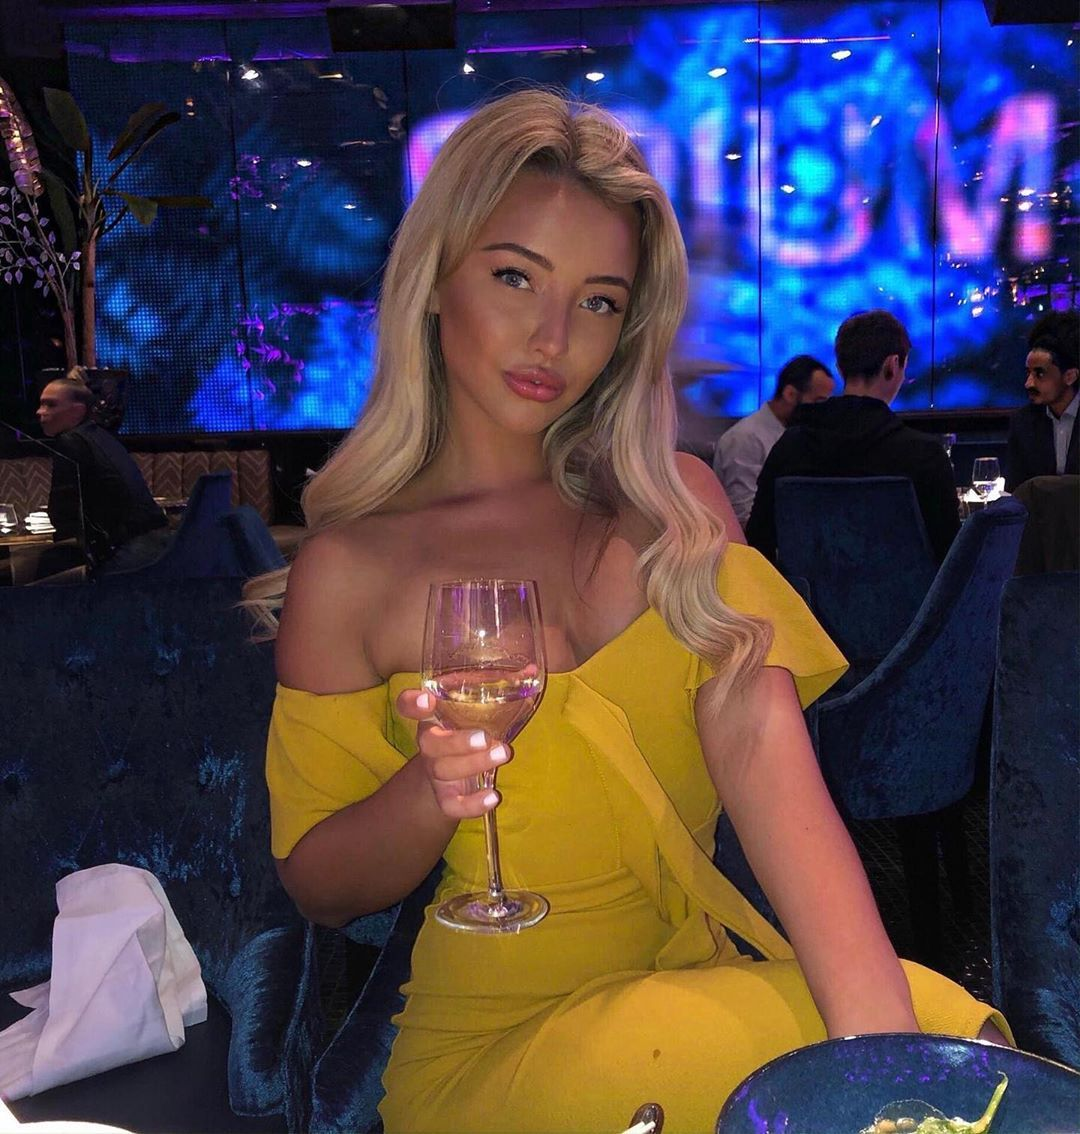 Image may contain: Harley Love Island, Love Island, Harley Brash, new, girl, late, arrival, bombshell, blonde, Instagram, age, job, Goblet, Night Club, Bar Counter, Pub, Club, Night Life, Glass, Human, Person